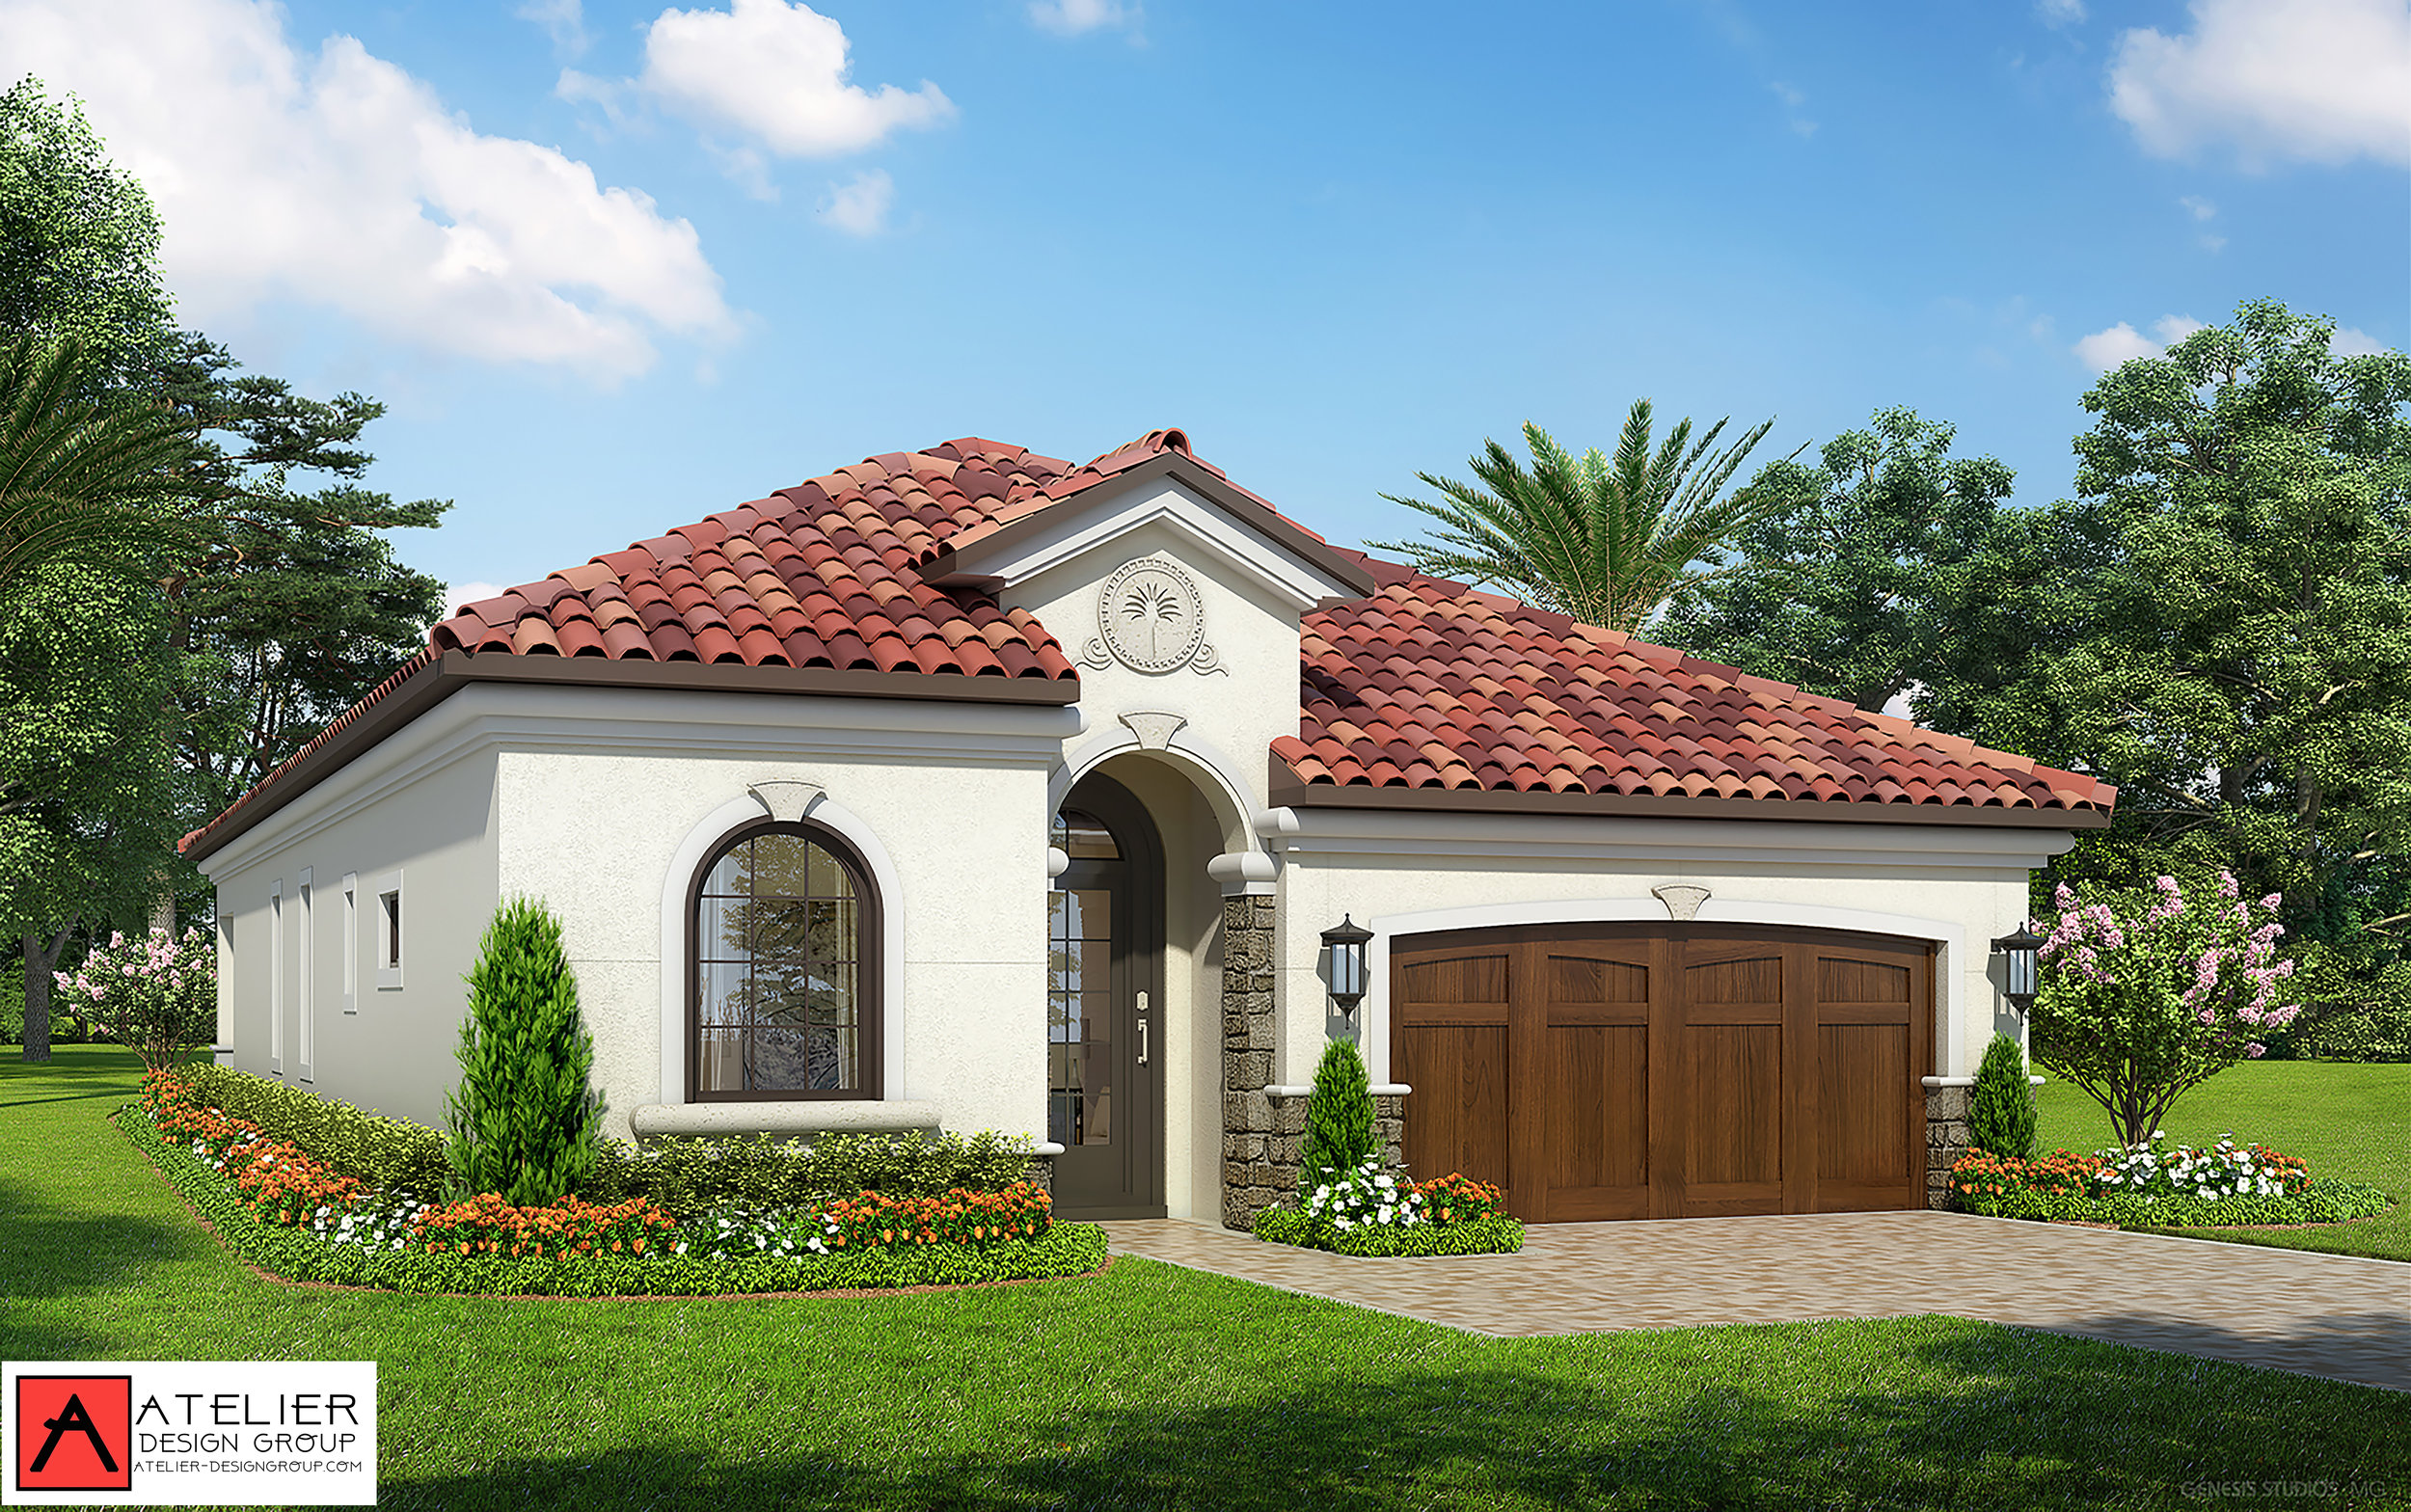 Atelier Design Group is working on a new and exciting project. Marina del Palma Yacht Club is a private gated community situated along the Intracoastal Waterway in Palm Coast, Florida. The Marina Model.